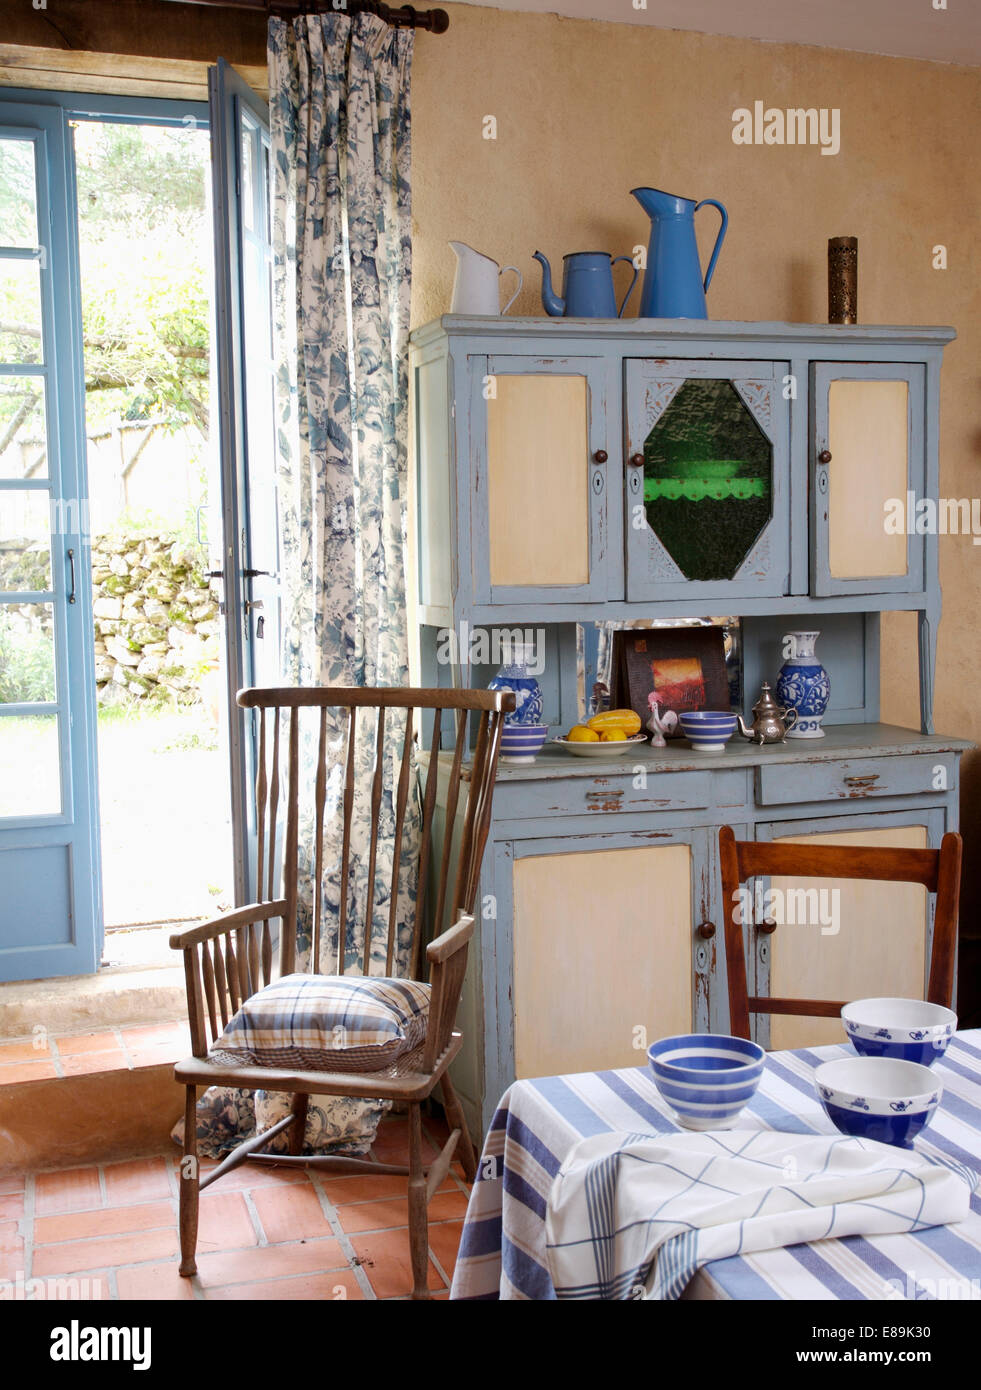 Blue White Fifties Dresser In Country Kitchen Dining Room With Wooden Chair Front Of French Doors